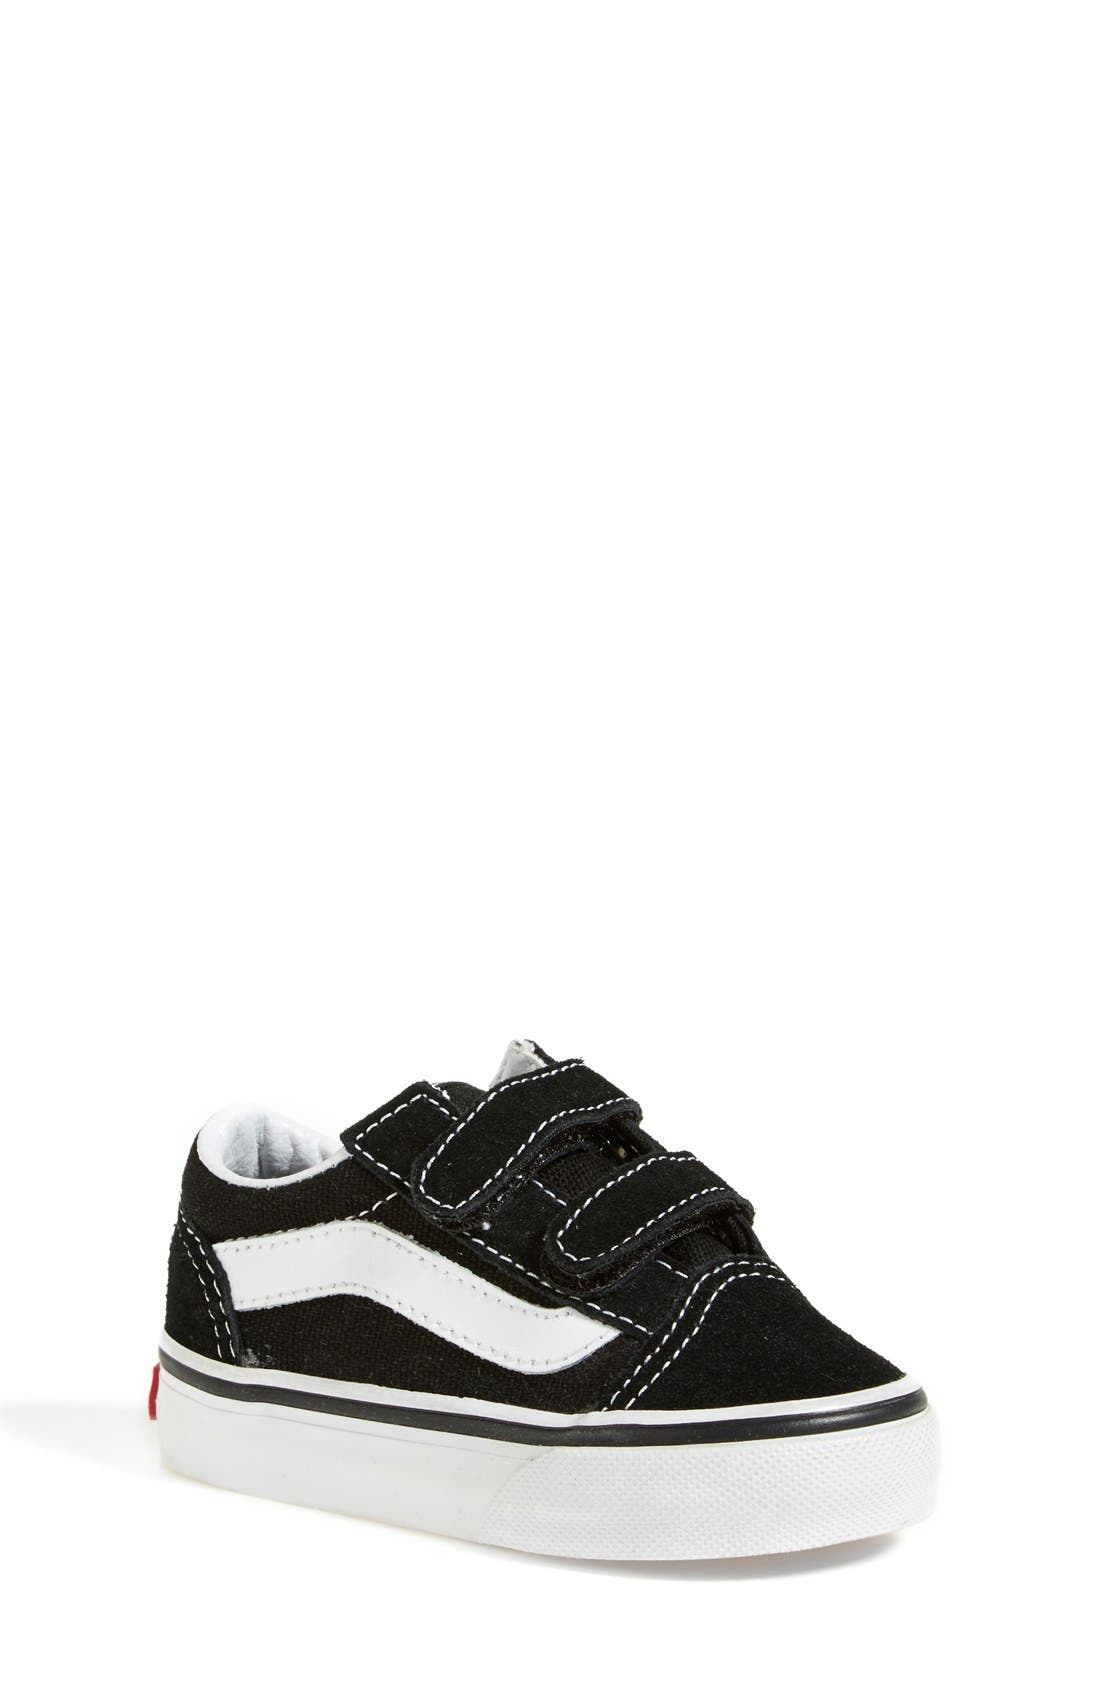 'Old Skool V' Sneaker,                             Main thumbnail 1, color,                             BLACK/ TRUE WHITE